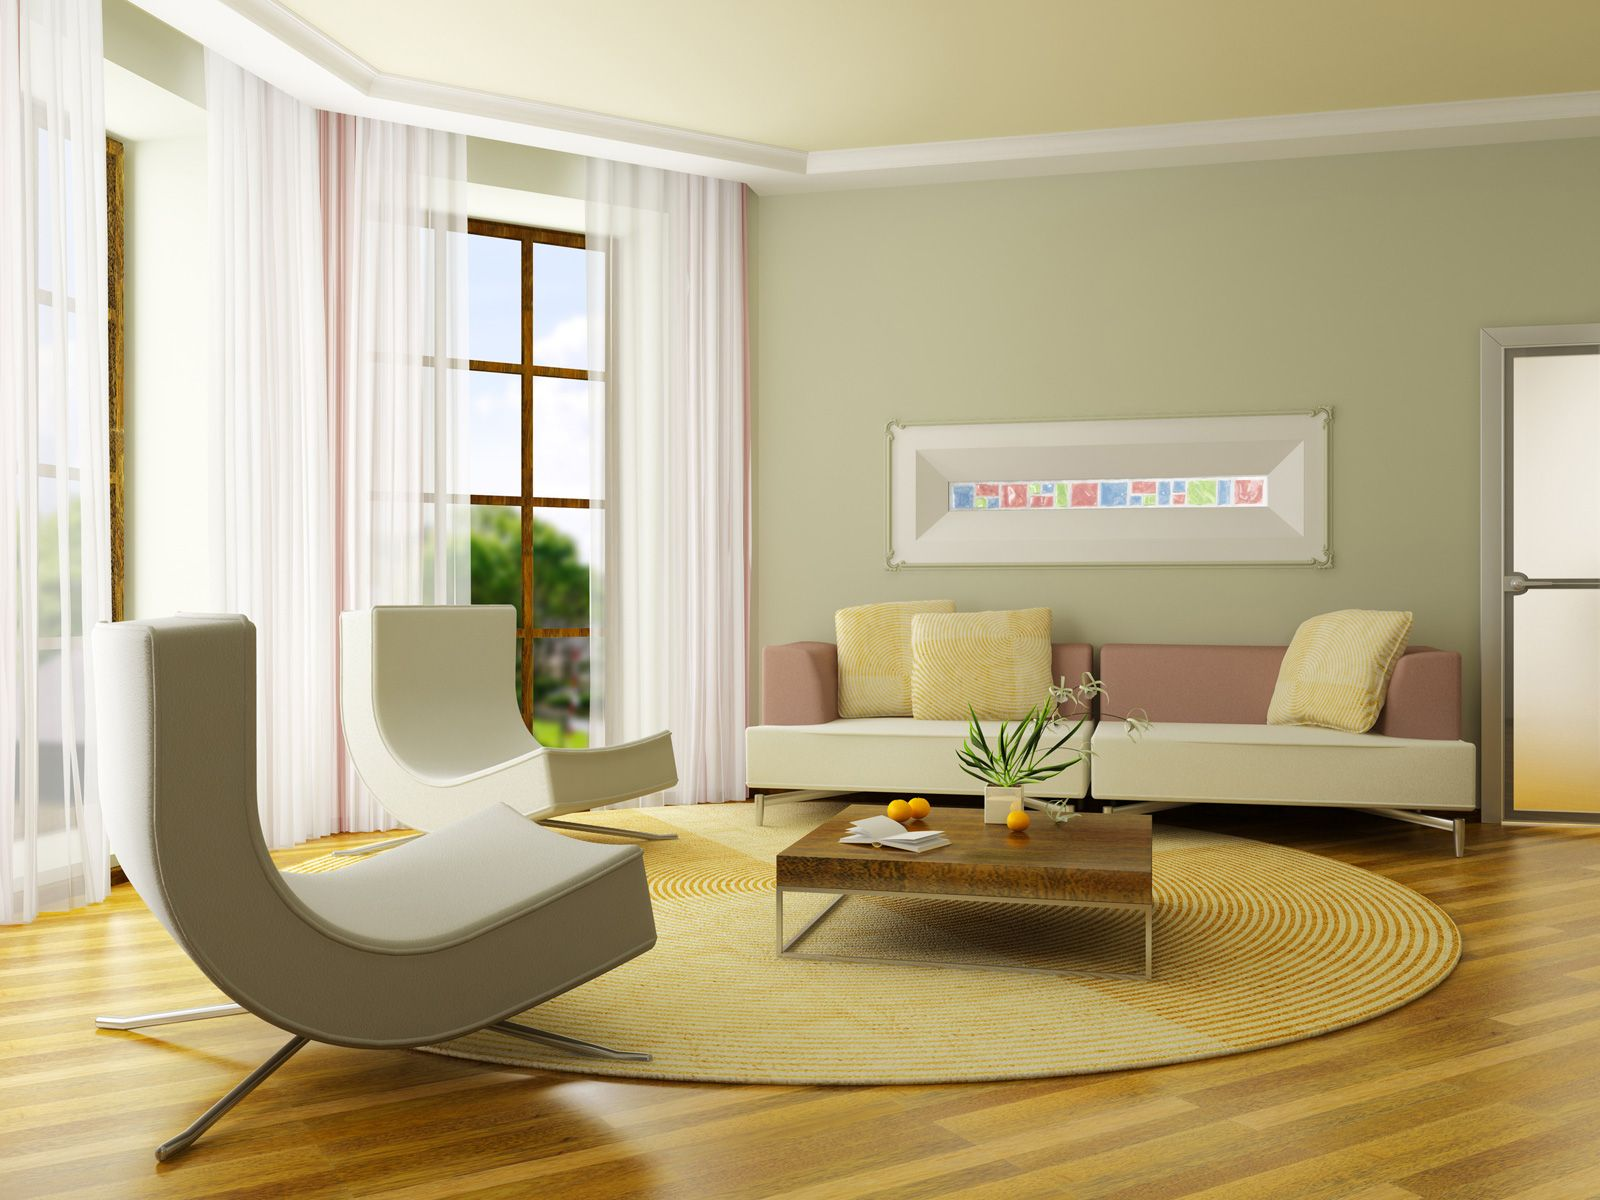 Cool Wall Paint With White Sova And White Curtain Sitting